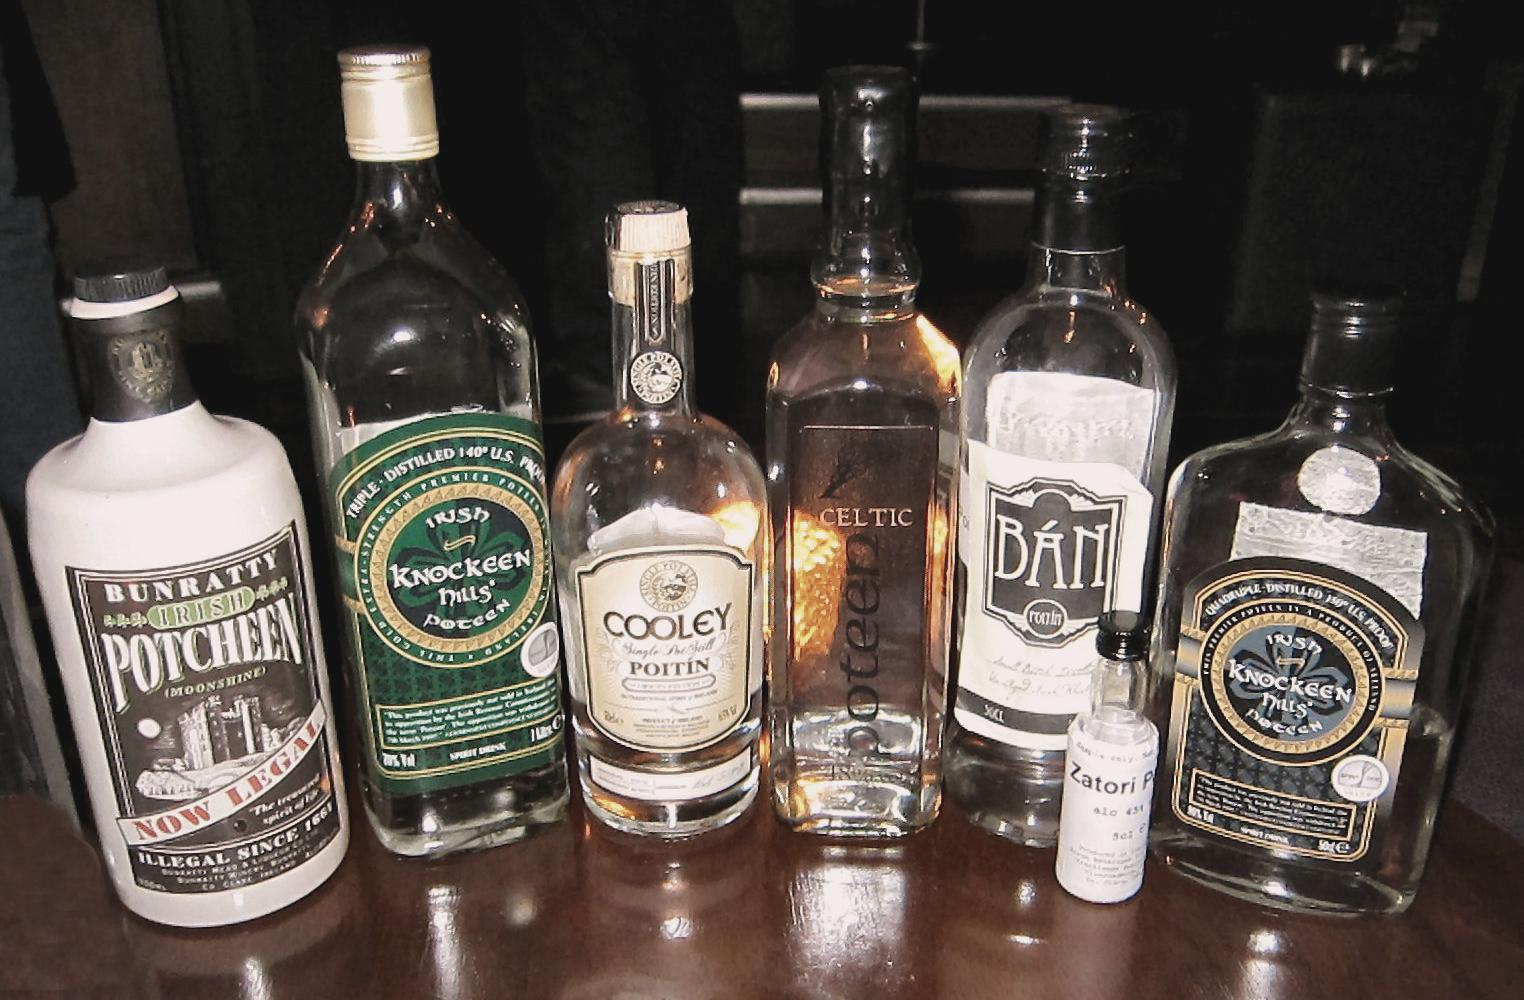 A Selection of Legal Irish and Celtic Poitin. Source: Ethanbentley/Wikimedia